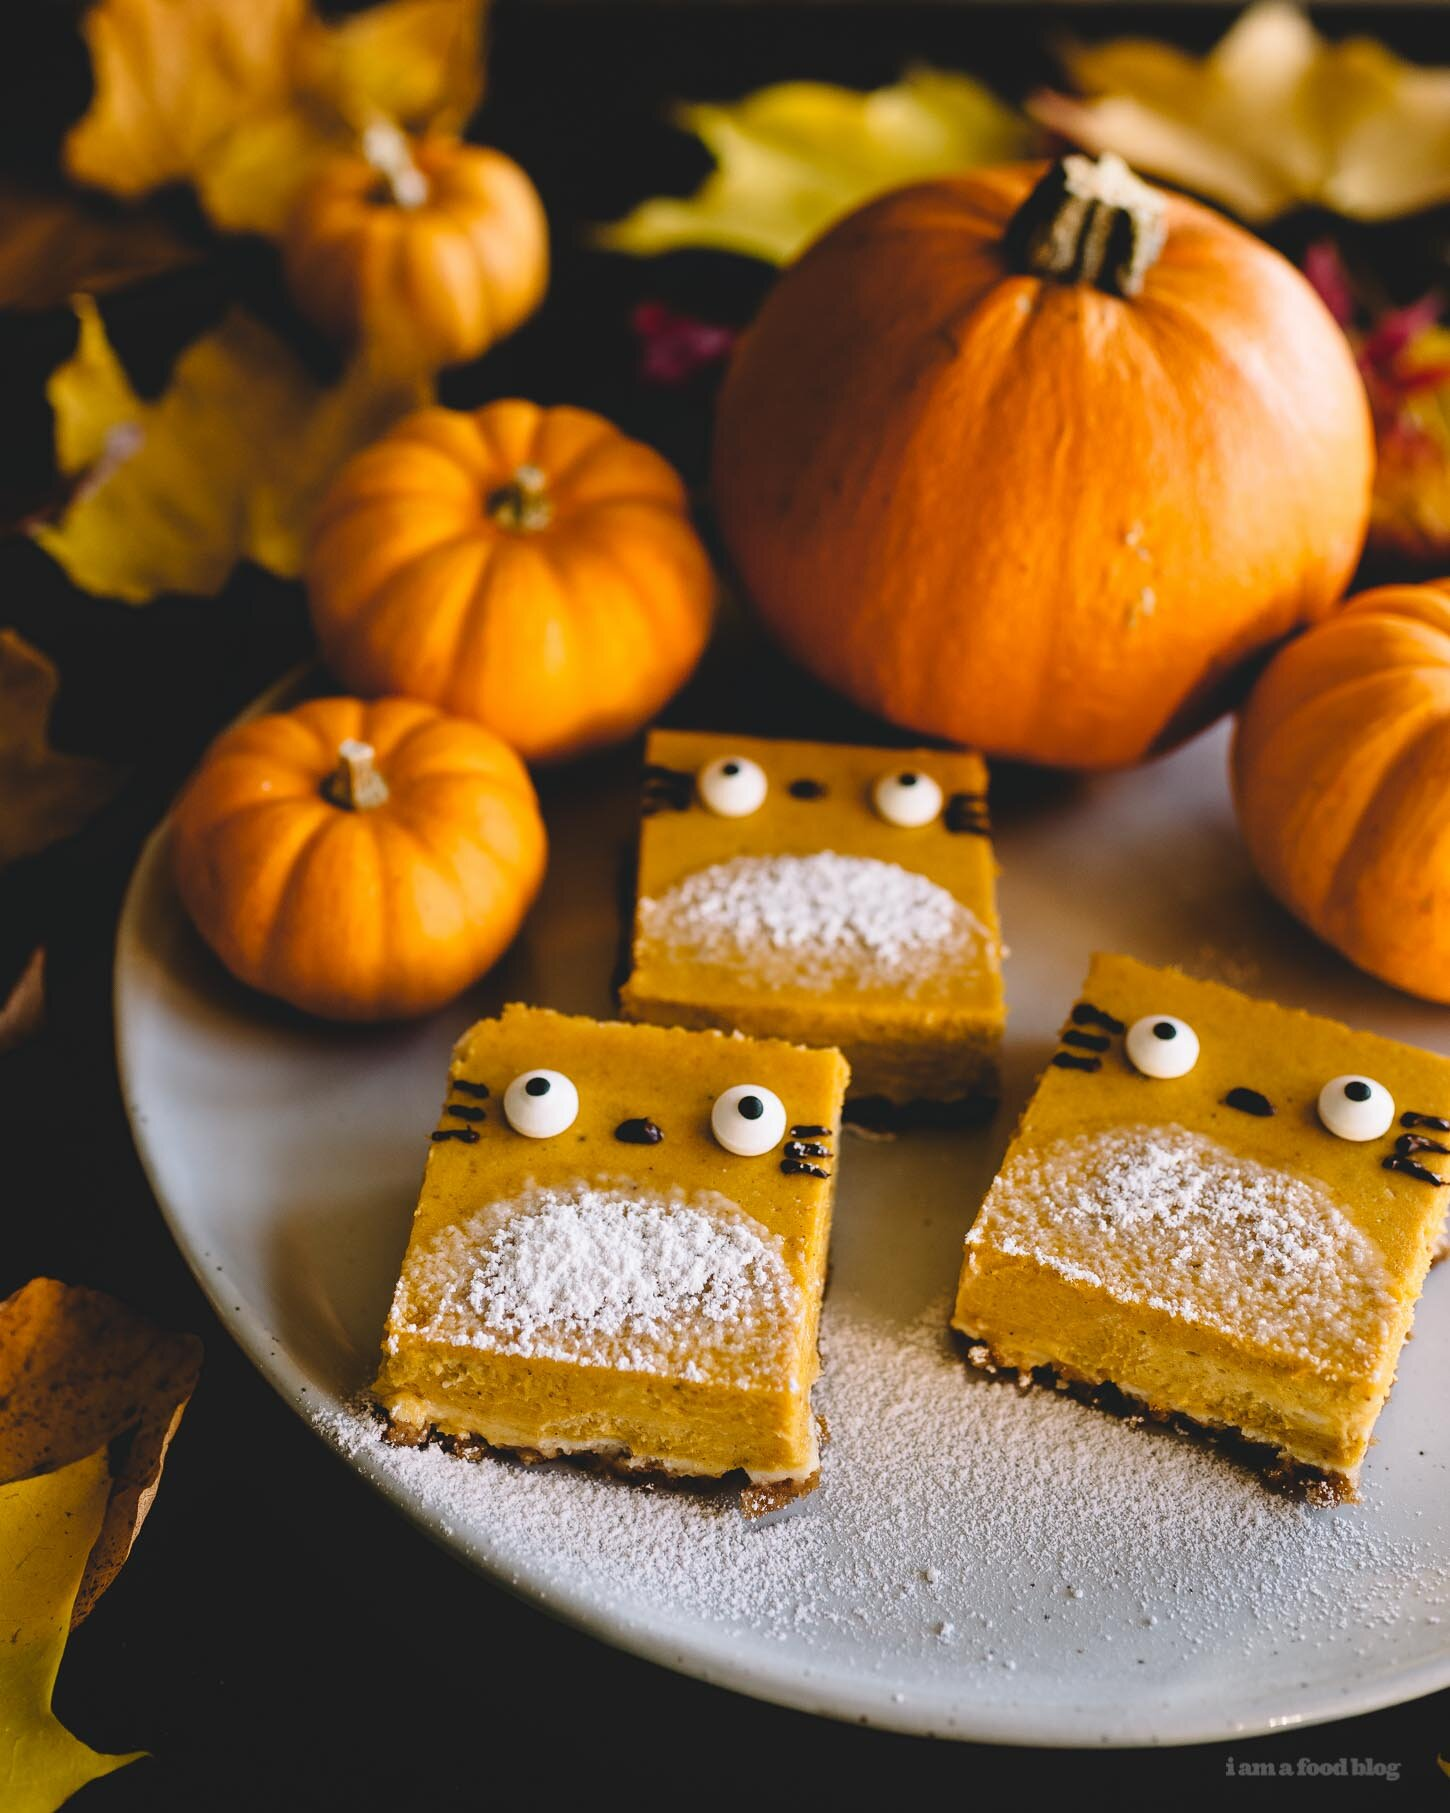 6. Totoro Pumpkin Cheesecake Bars - Looking for something unique and easy to make this Halloween? These Totoro shaped Cheesecake Bars will do the trick! They do not require you to turn on your oven, are made with minimal ingredients and are adorable - oh, and not to mention are pumpkin flavored!